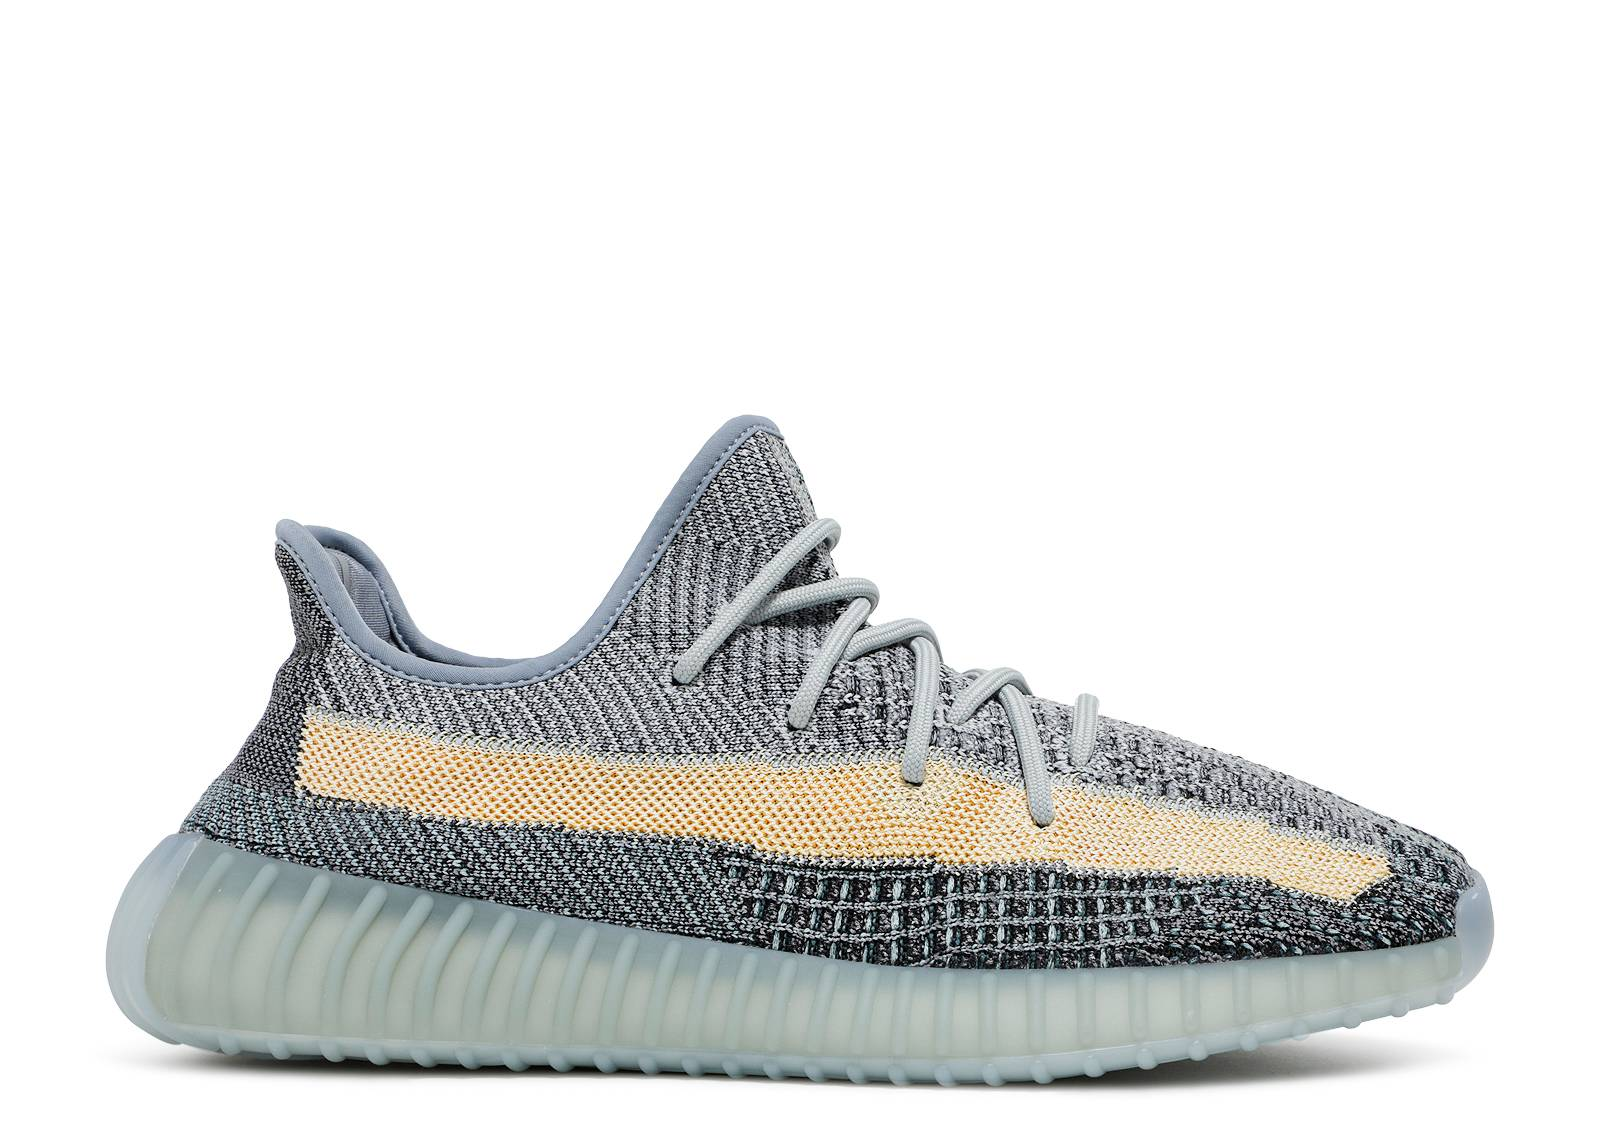 YEEZY BOOST 350 V2 'ASH BLUE'